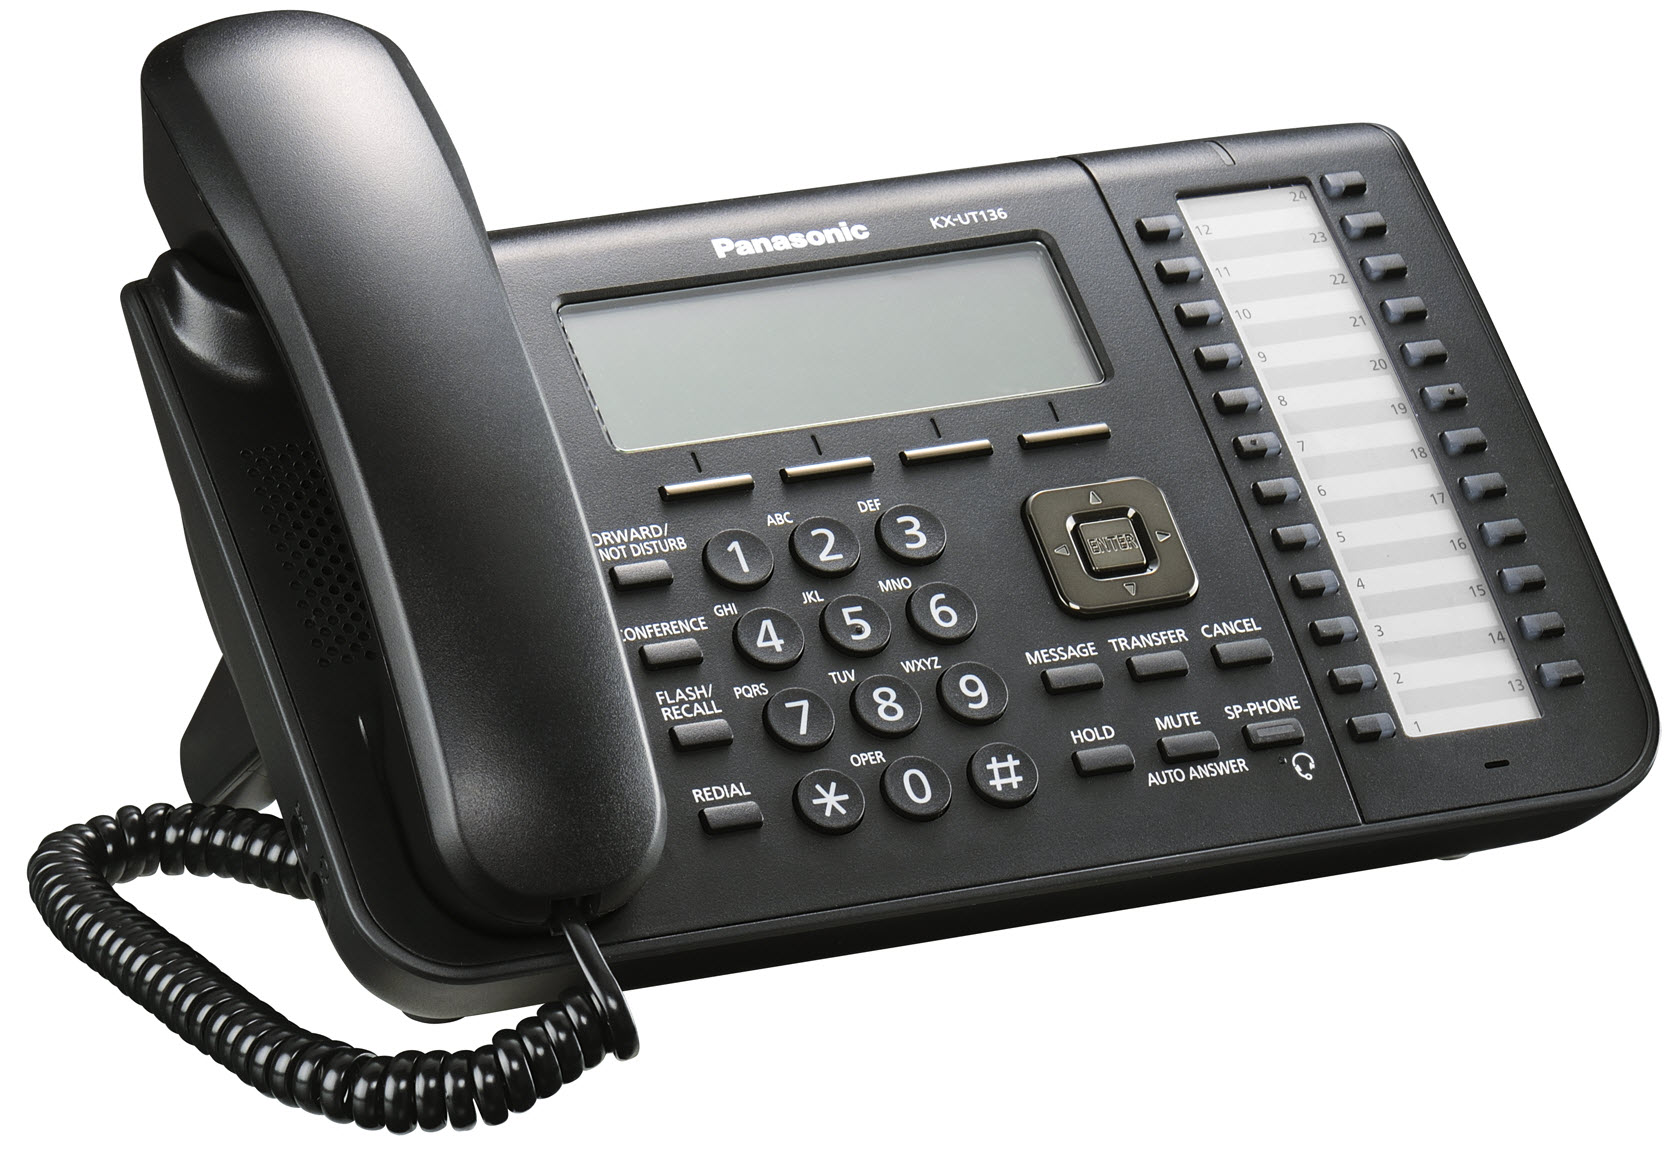 Panasonic Kx Ut136 Sip Desk Phone Available In Black And